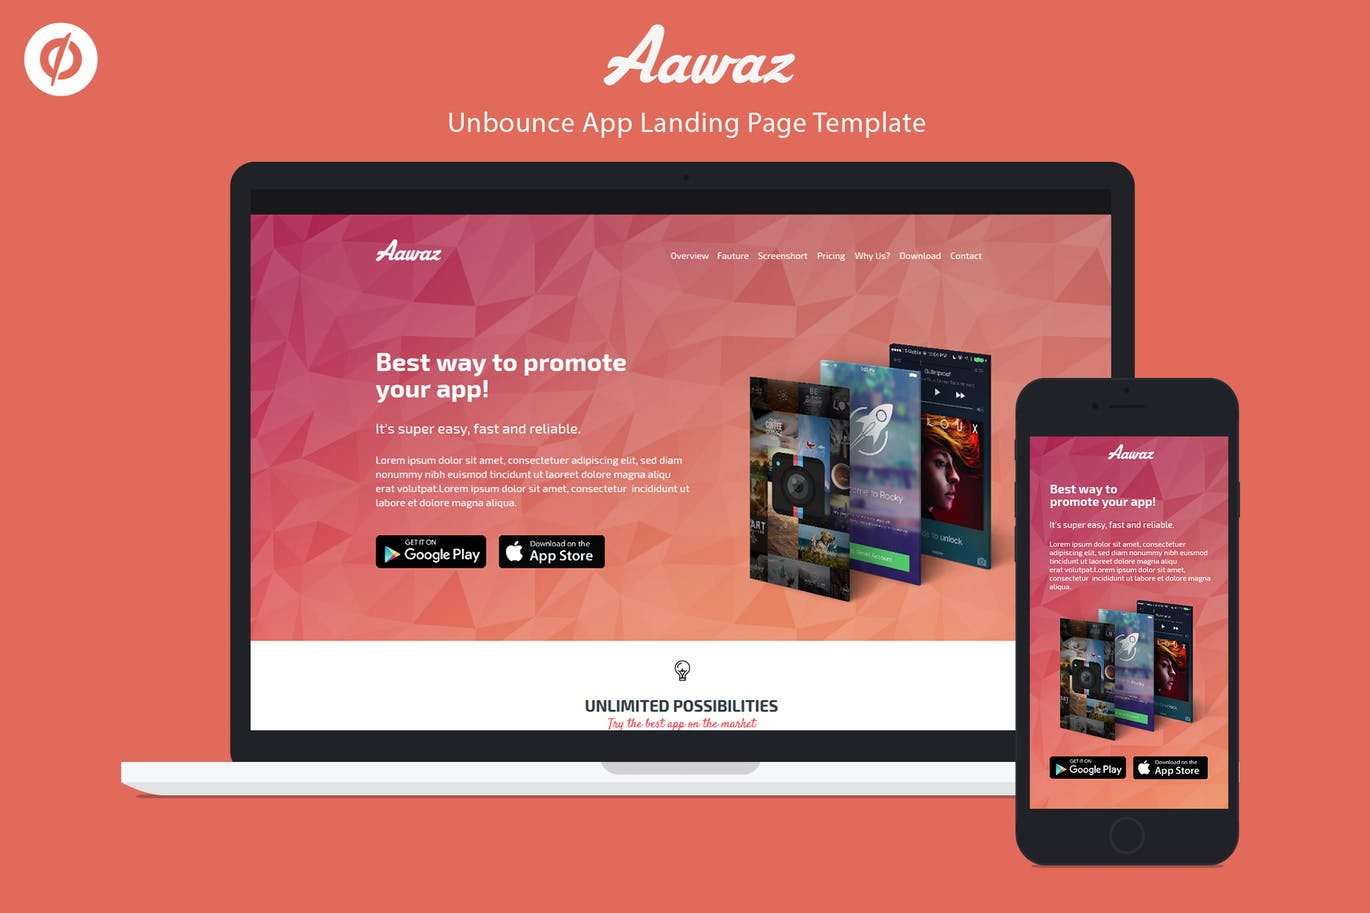 unbounce app landing page template aawaz weidea. Black Bedroom Furniture Sets. Home Design Ideas